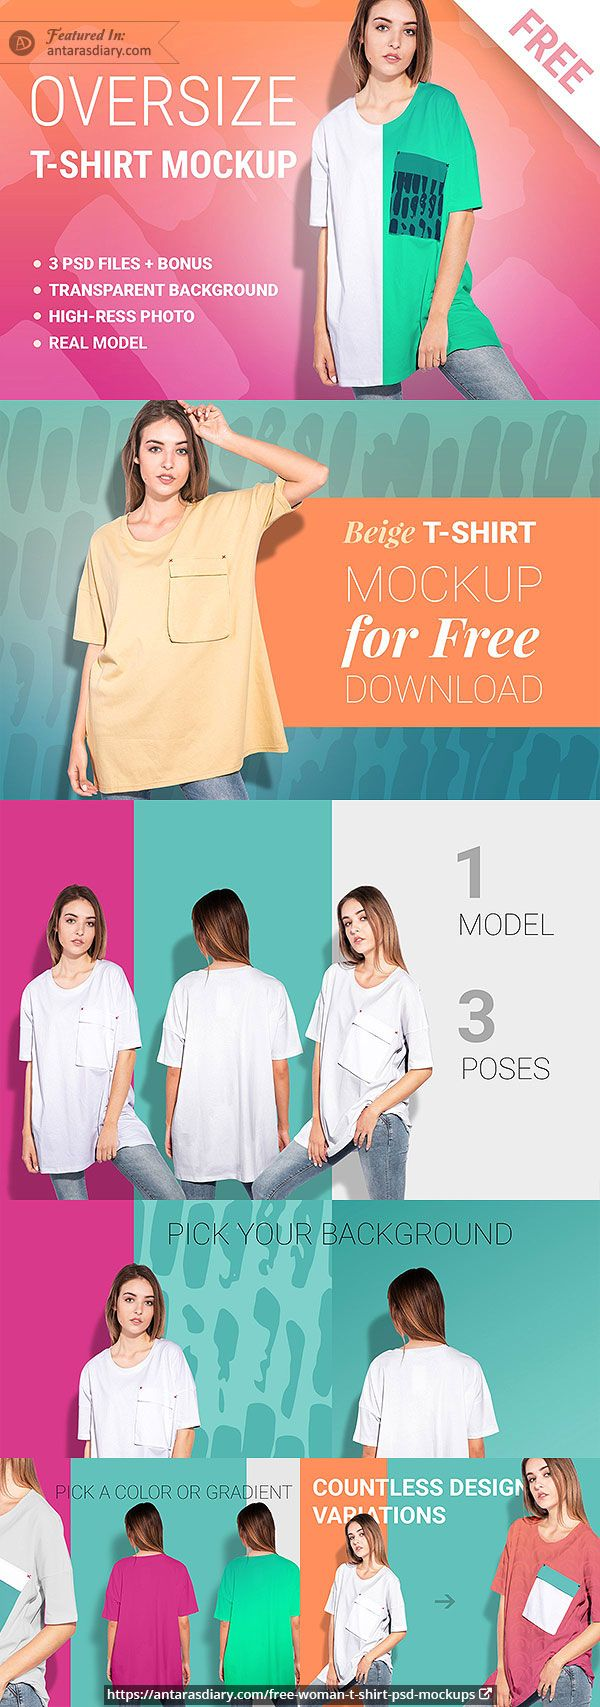 Download 60 Free Woman T Shirt And Apparel Psd Mockups T Shirts For Women Shirt Mockup Women